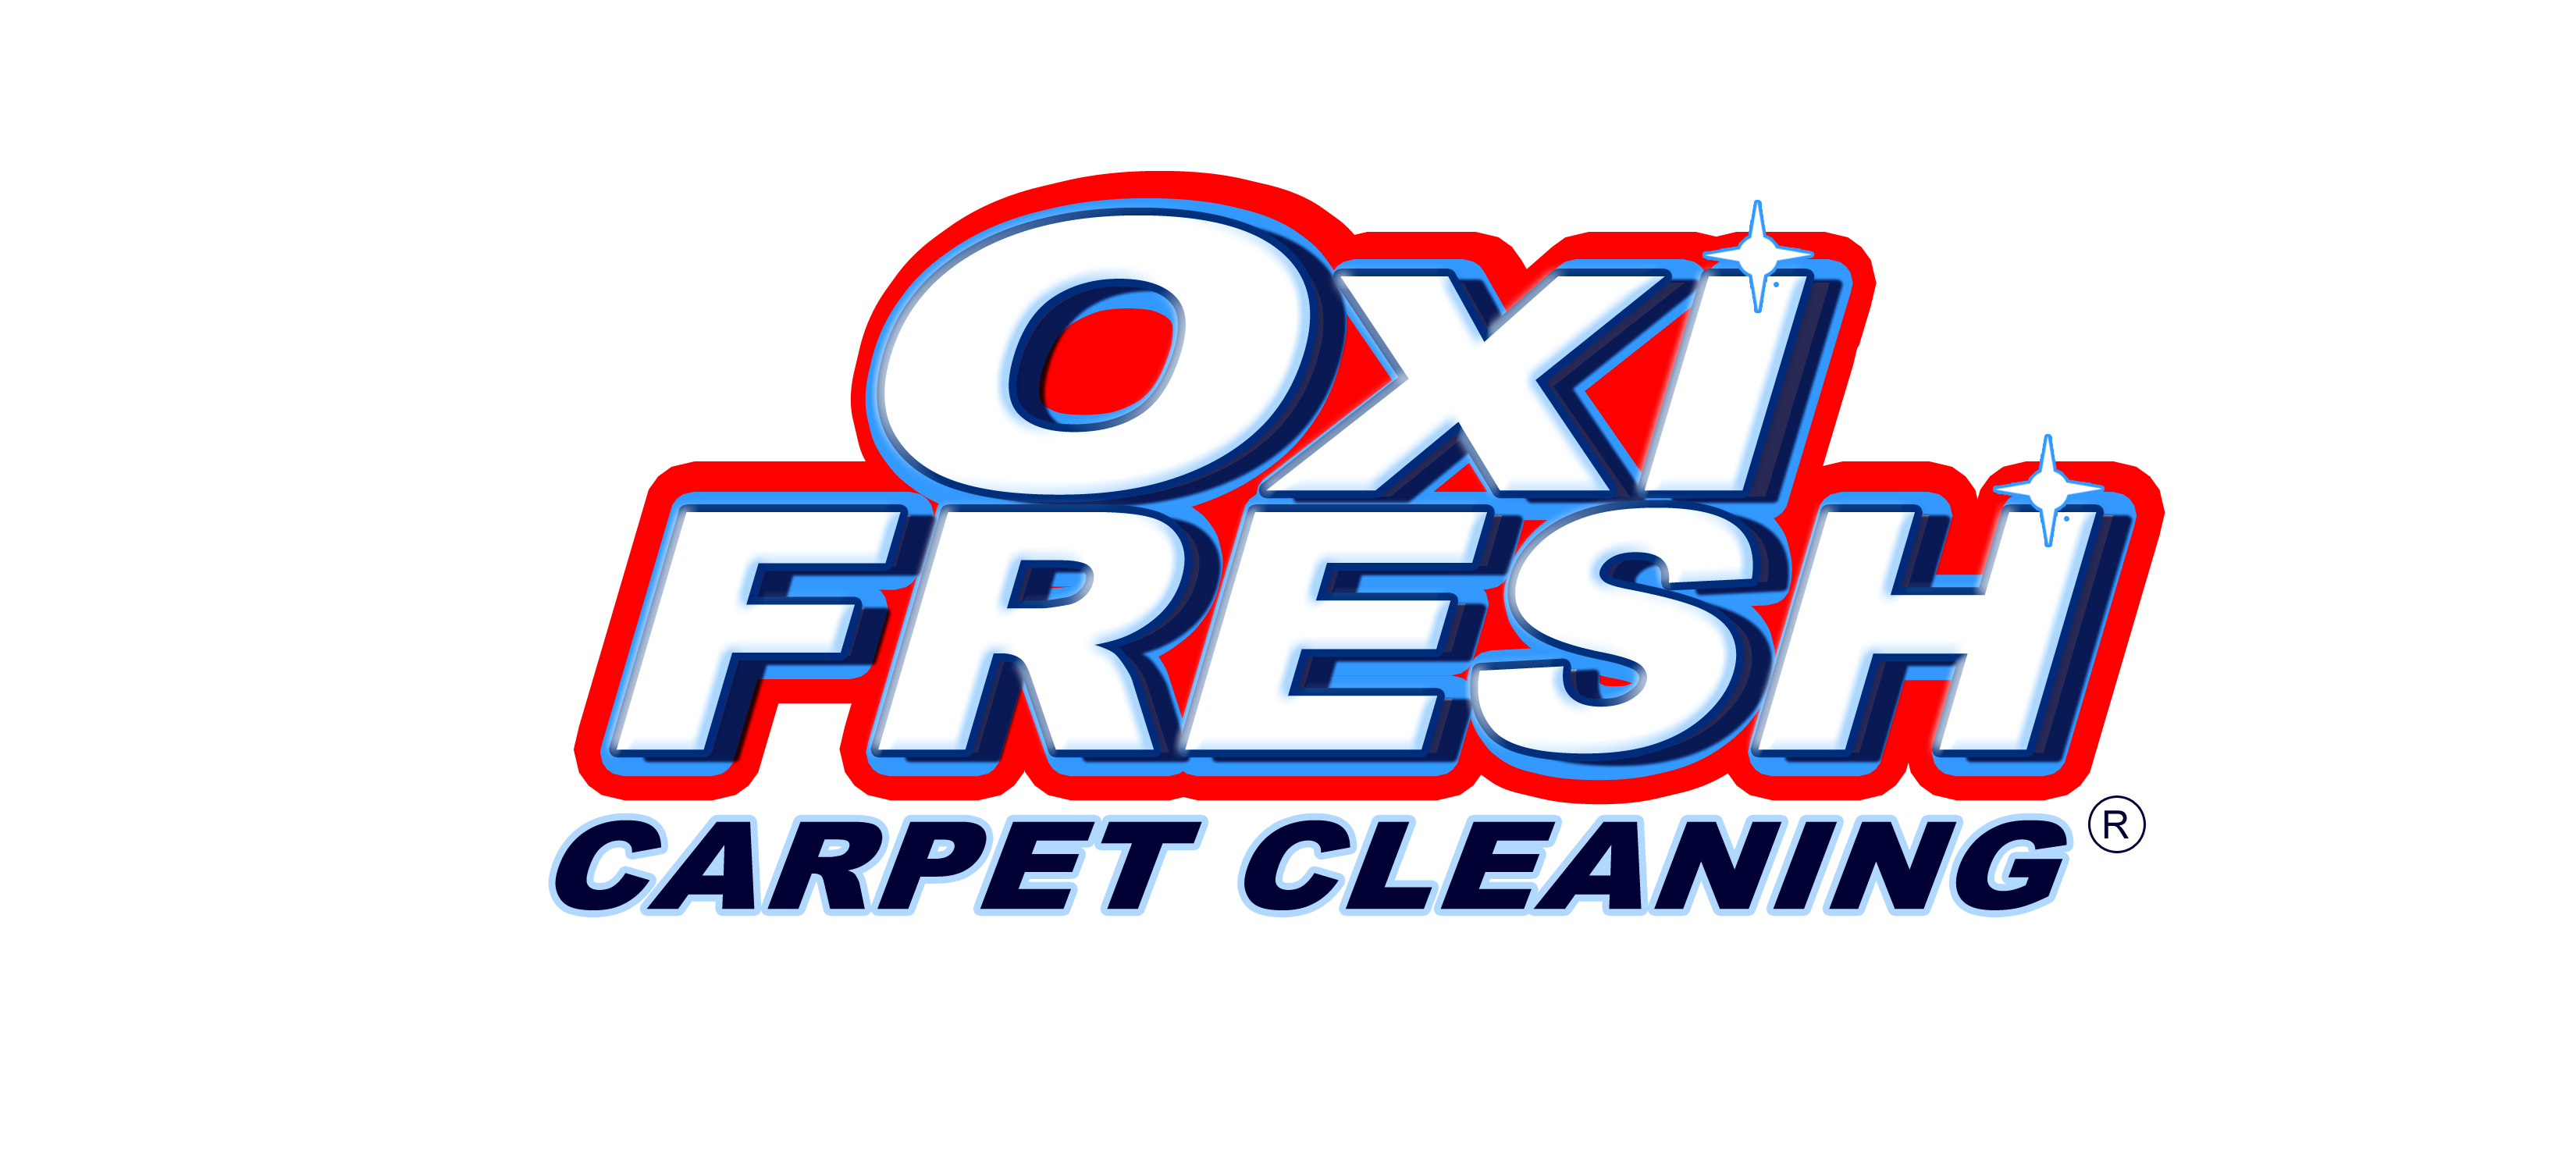 Oxi Fresh Carpet Cleaning Launches International Expansion